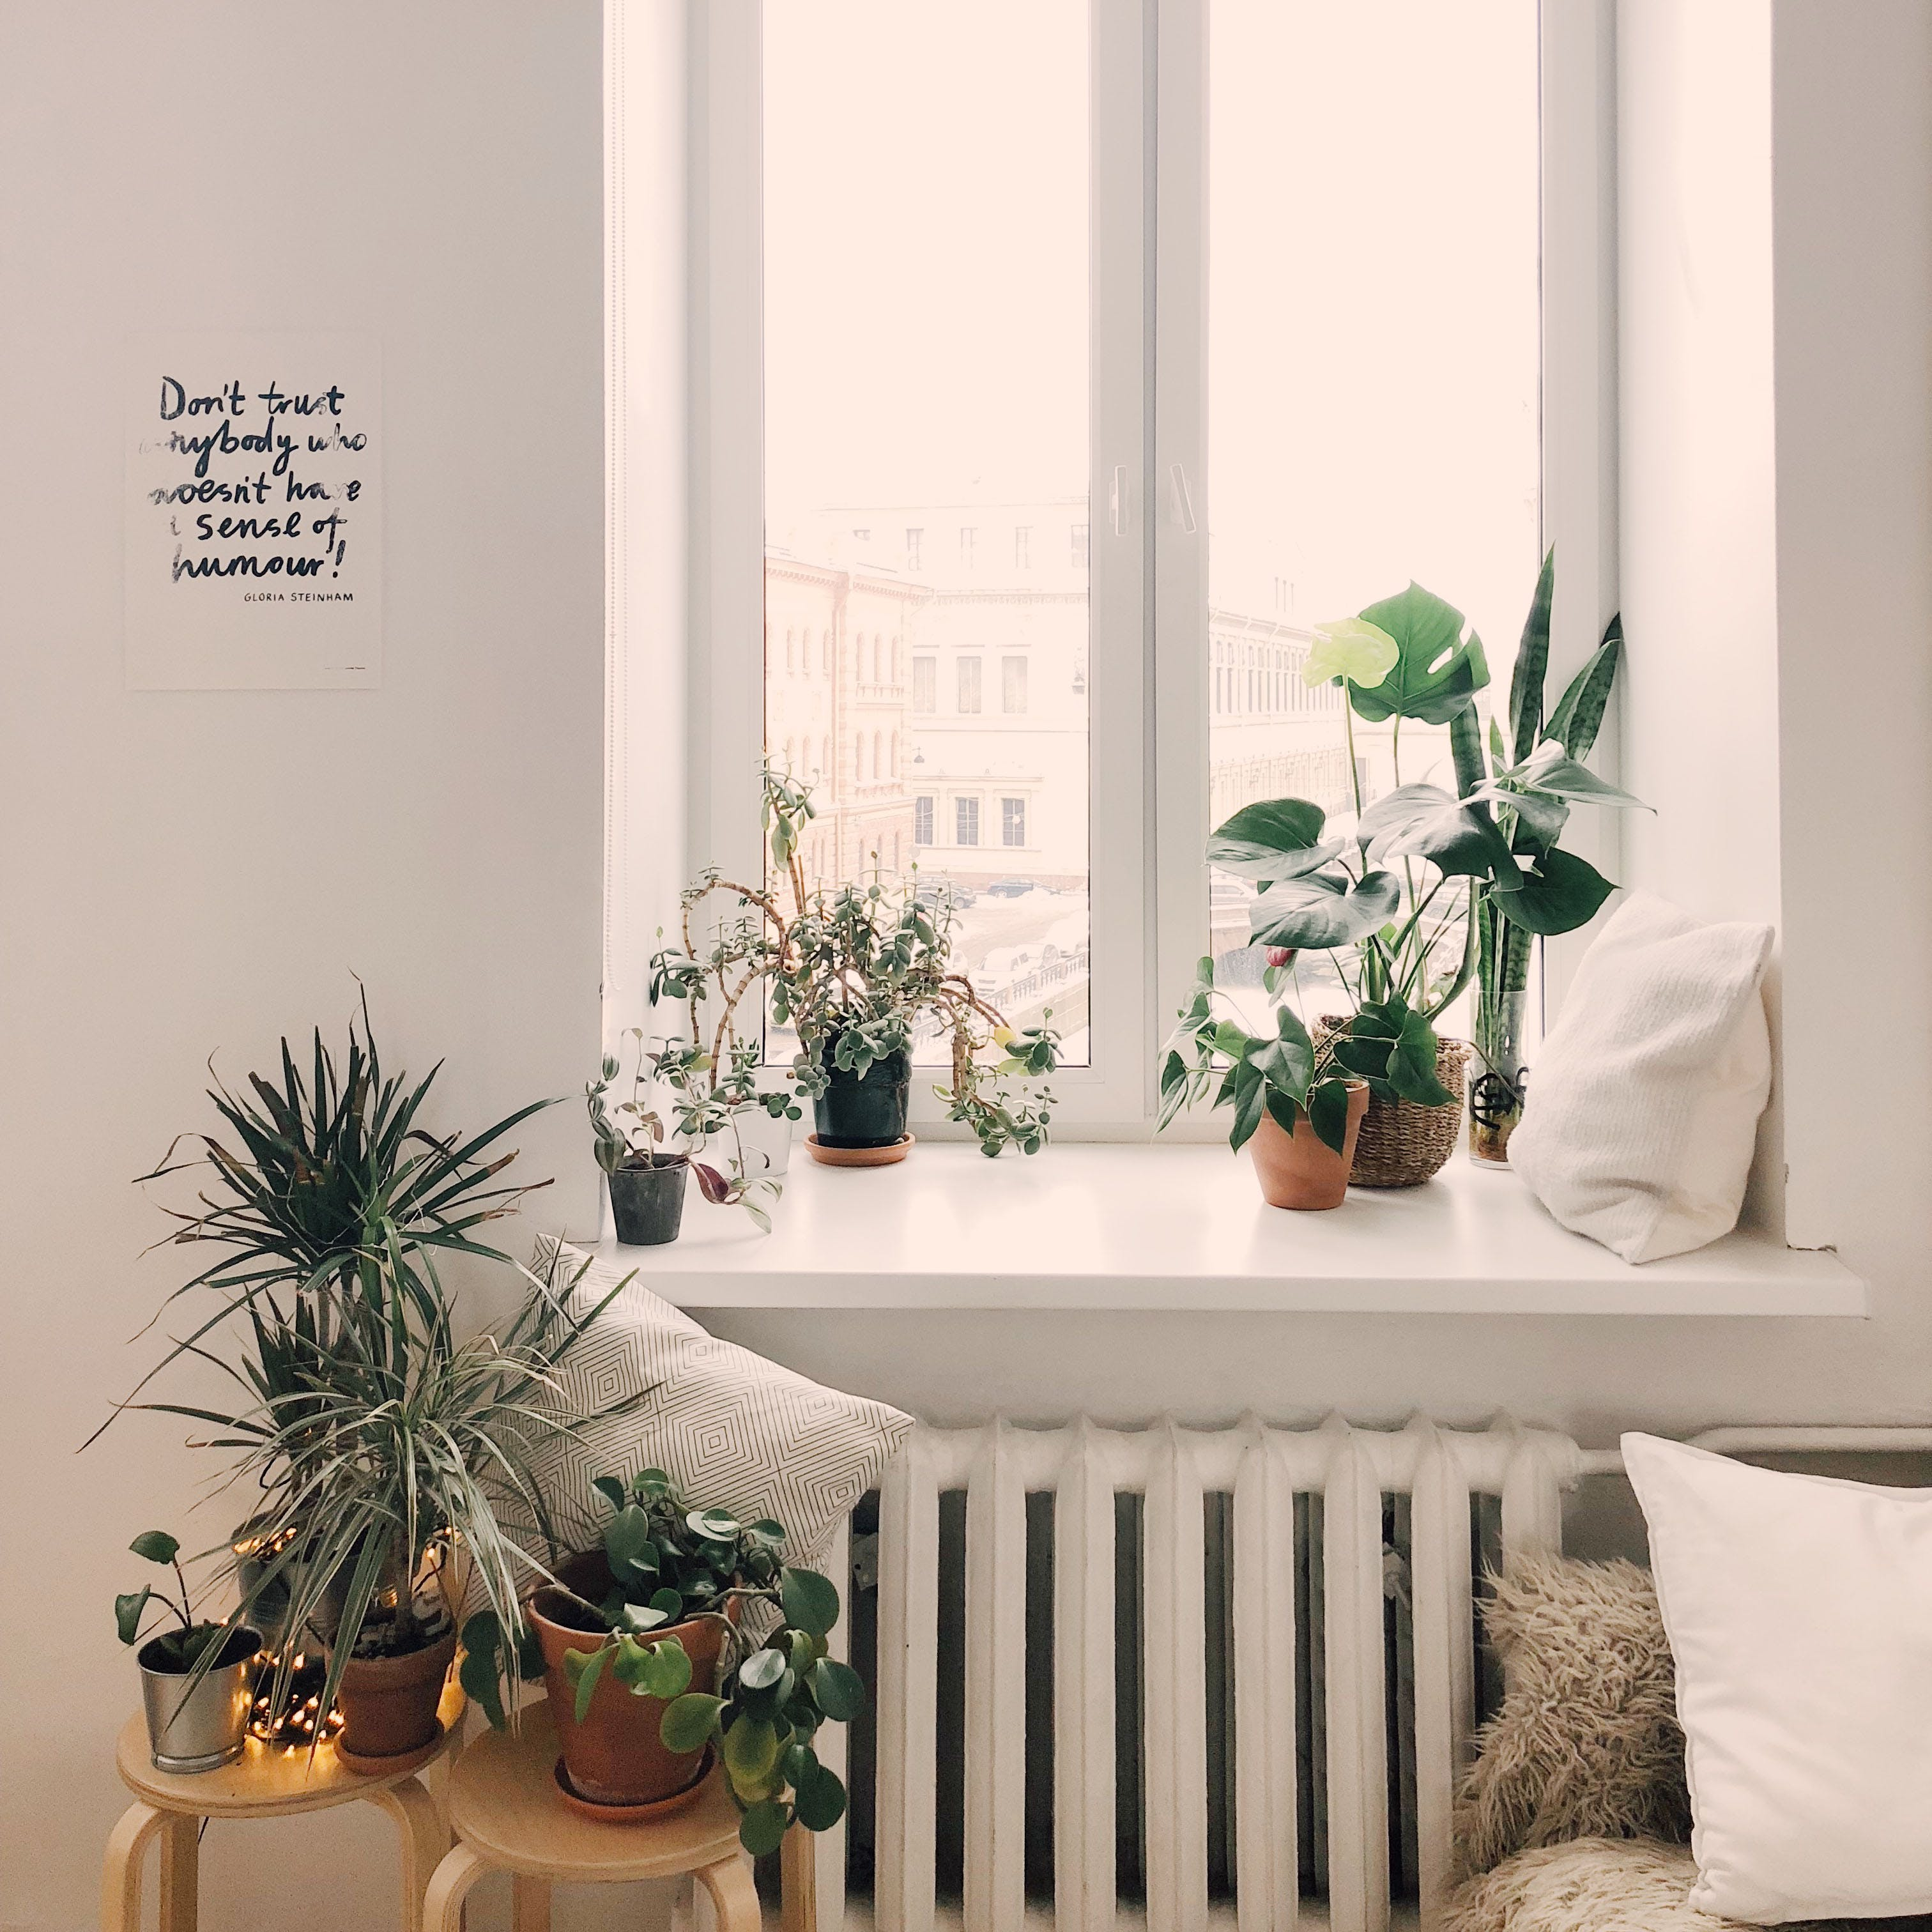 White,Room,Houseplant,Interior design,Furniture,Curtain,Table,Home,Window,Leaf